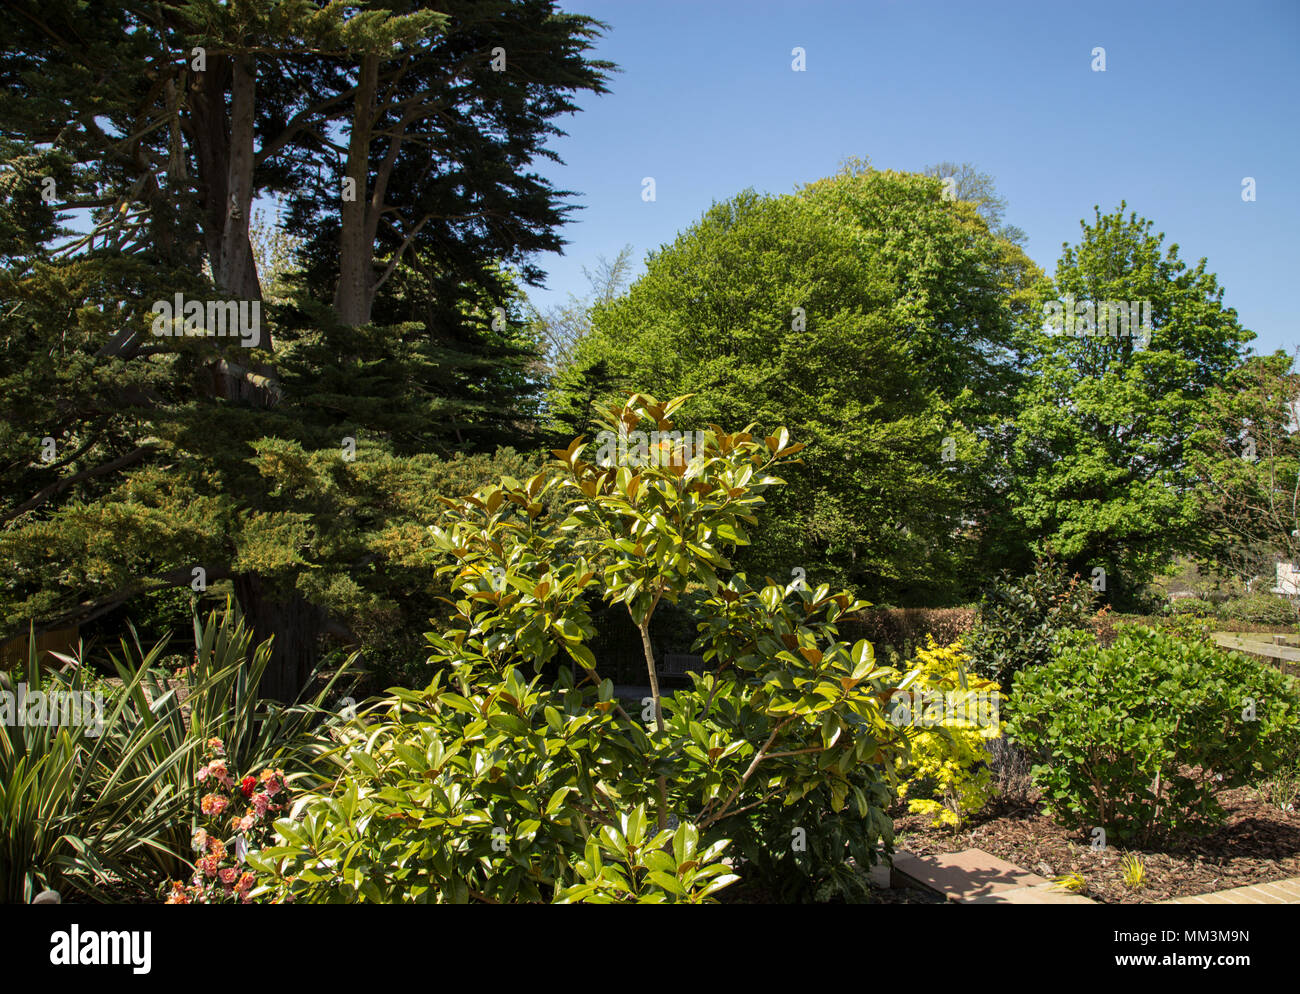 Mixed foliage in a garden with borrowed landscape, trees and greenery from beyond providing a backdrop to the view. - Stock Image